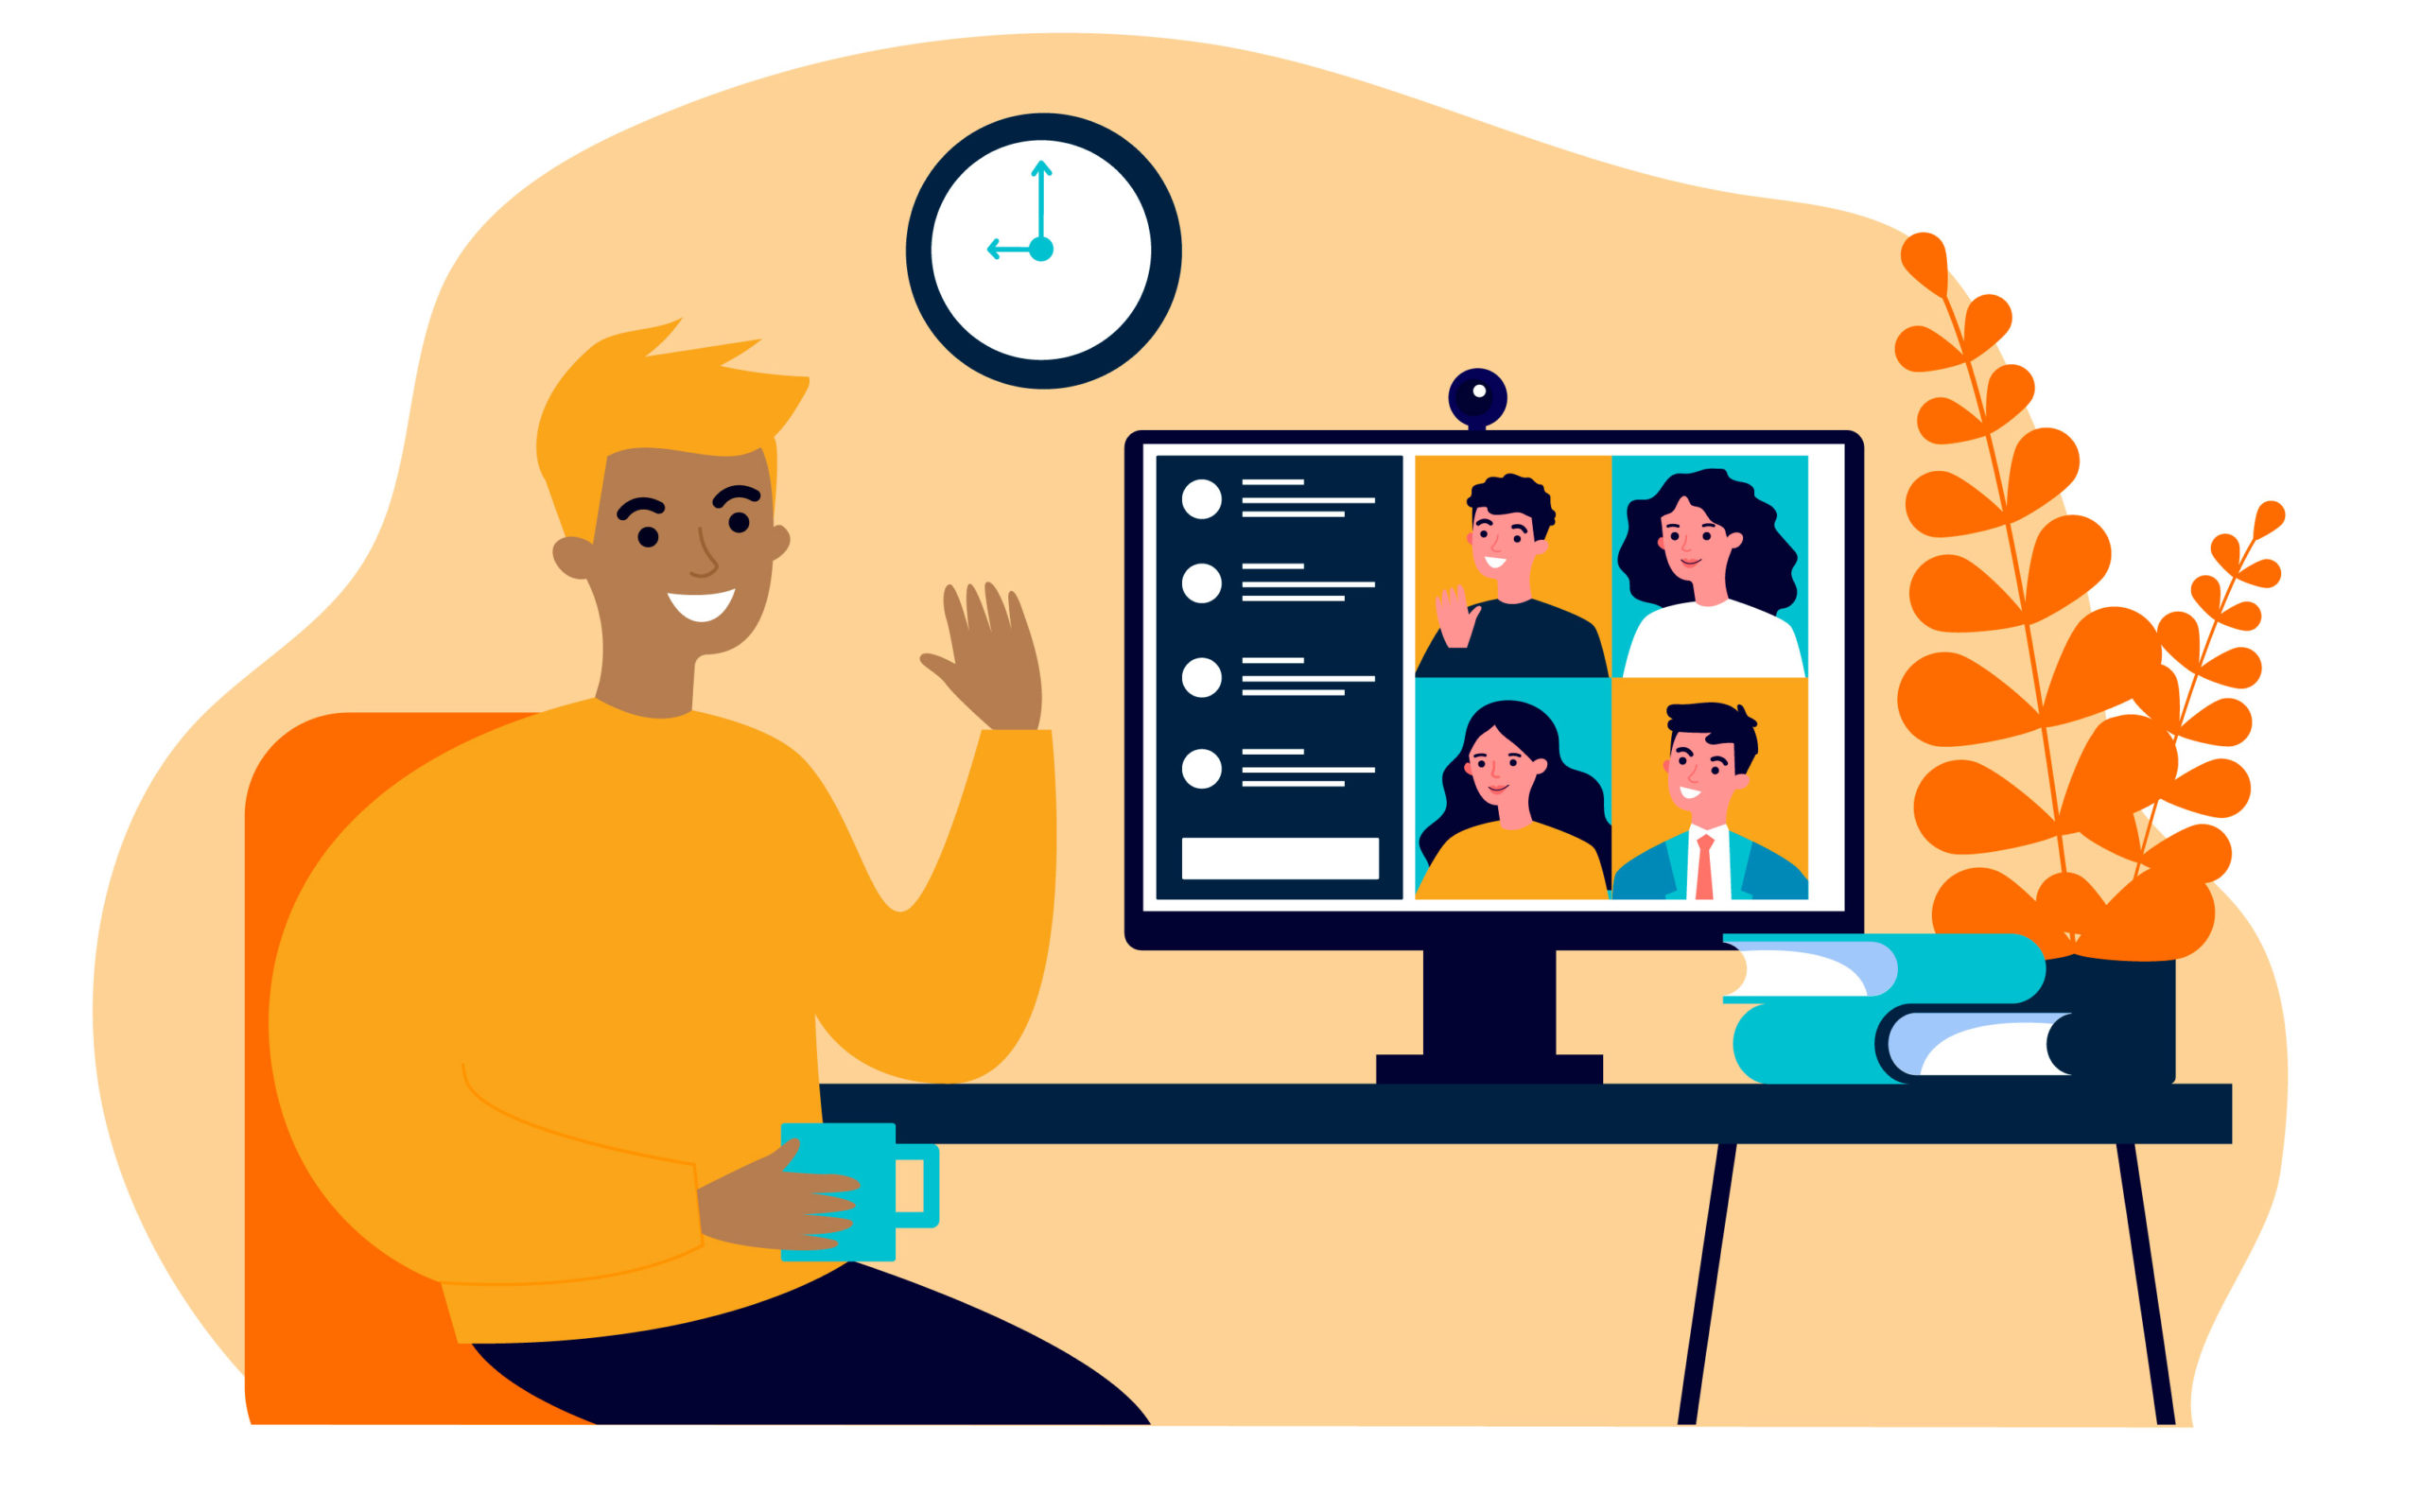 5 things to consider for a successful virtual event